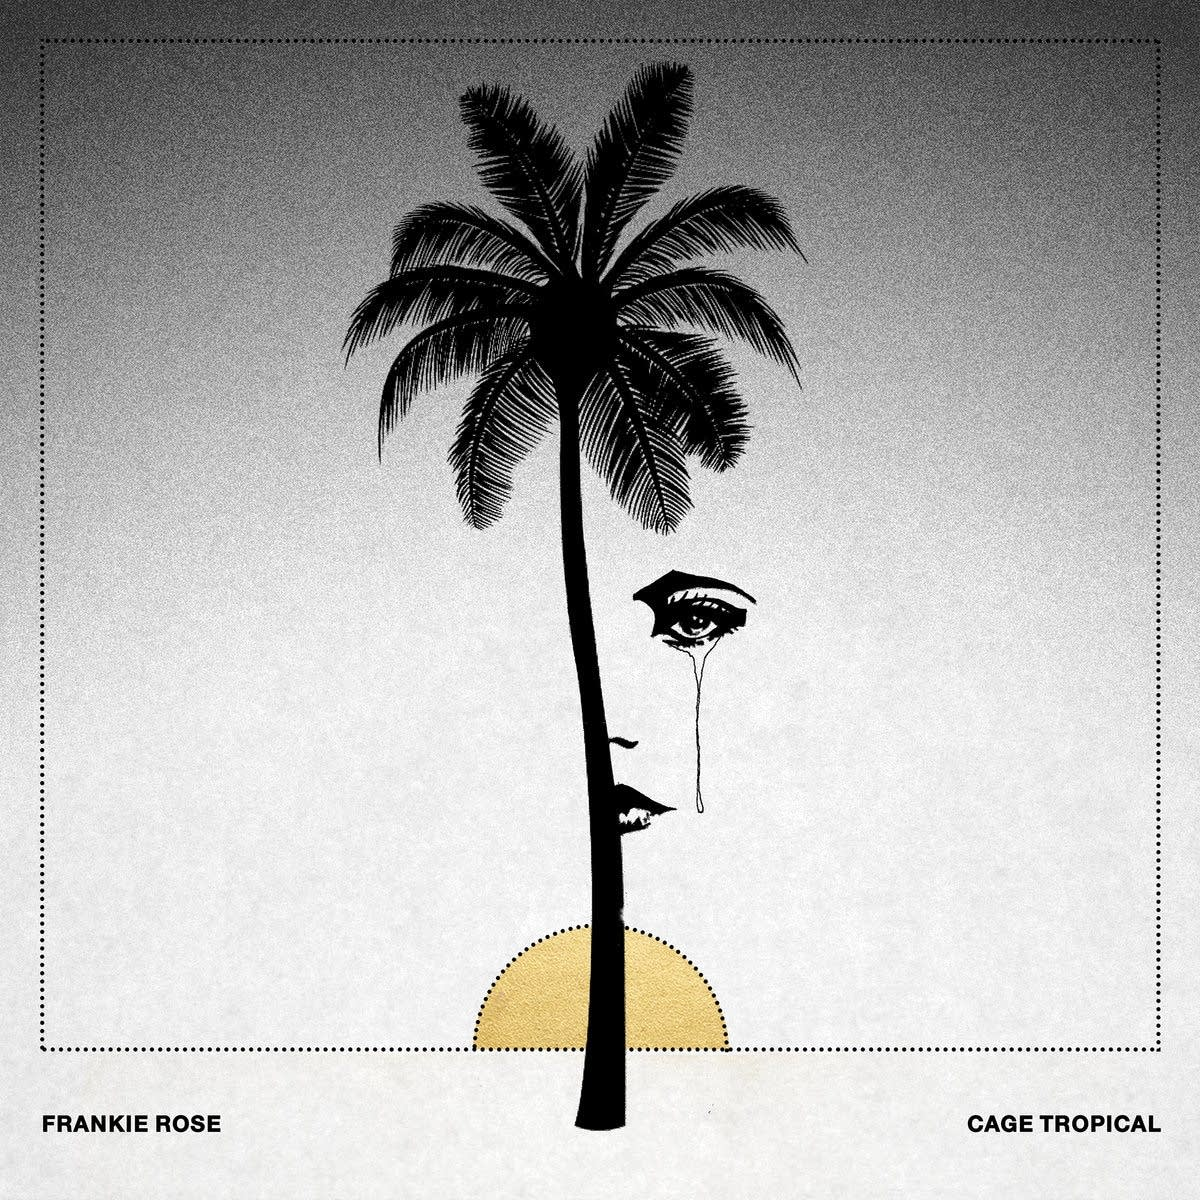 Frankie Rose, 'Cage Tropical'